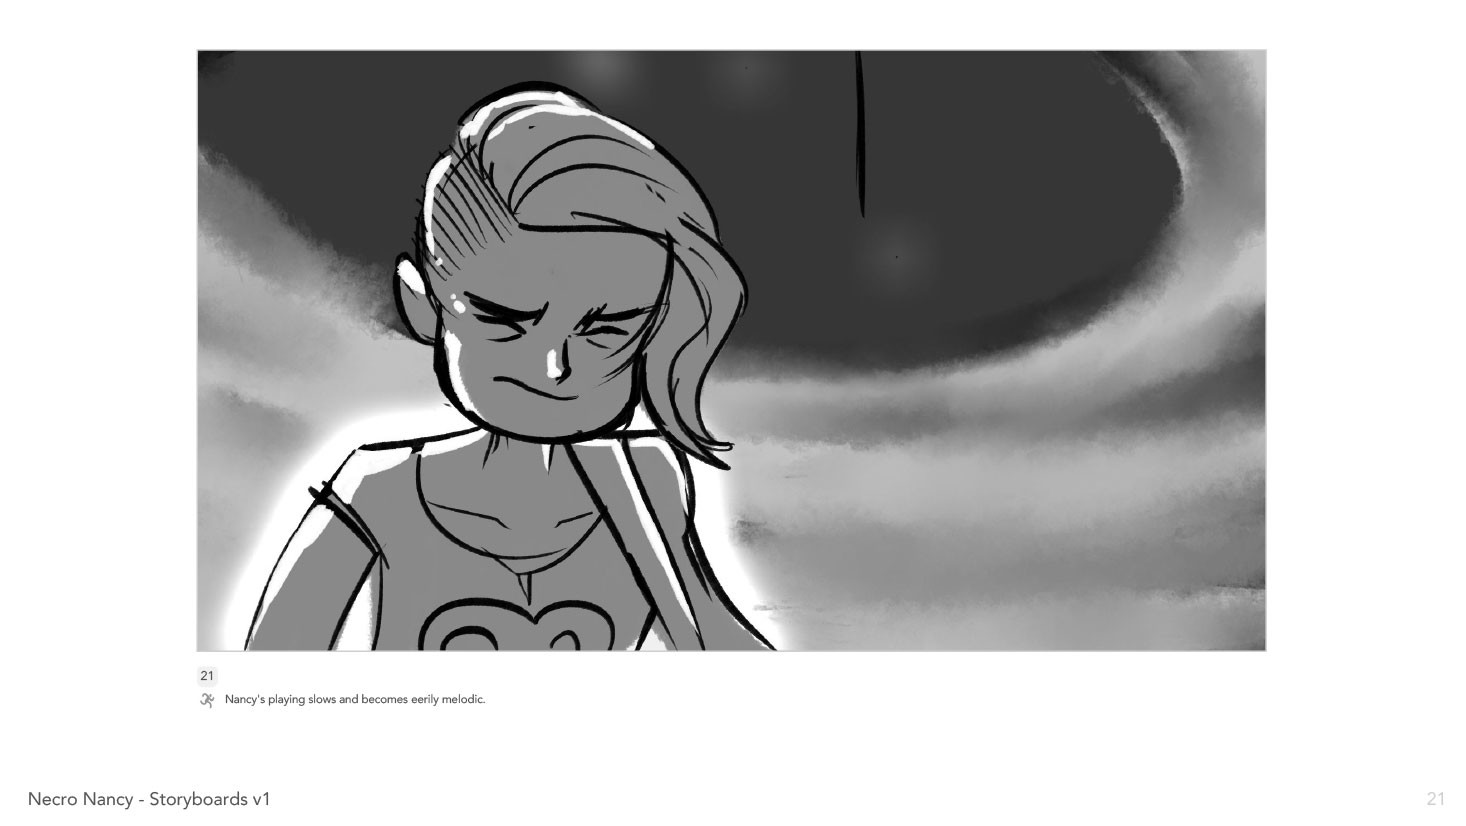 Chx welch necro nancy storyboards 22